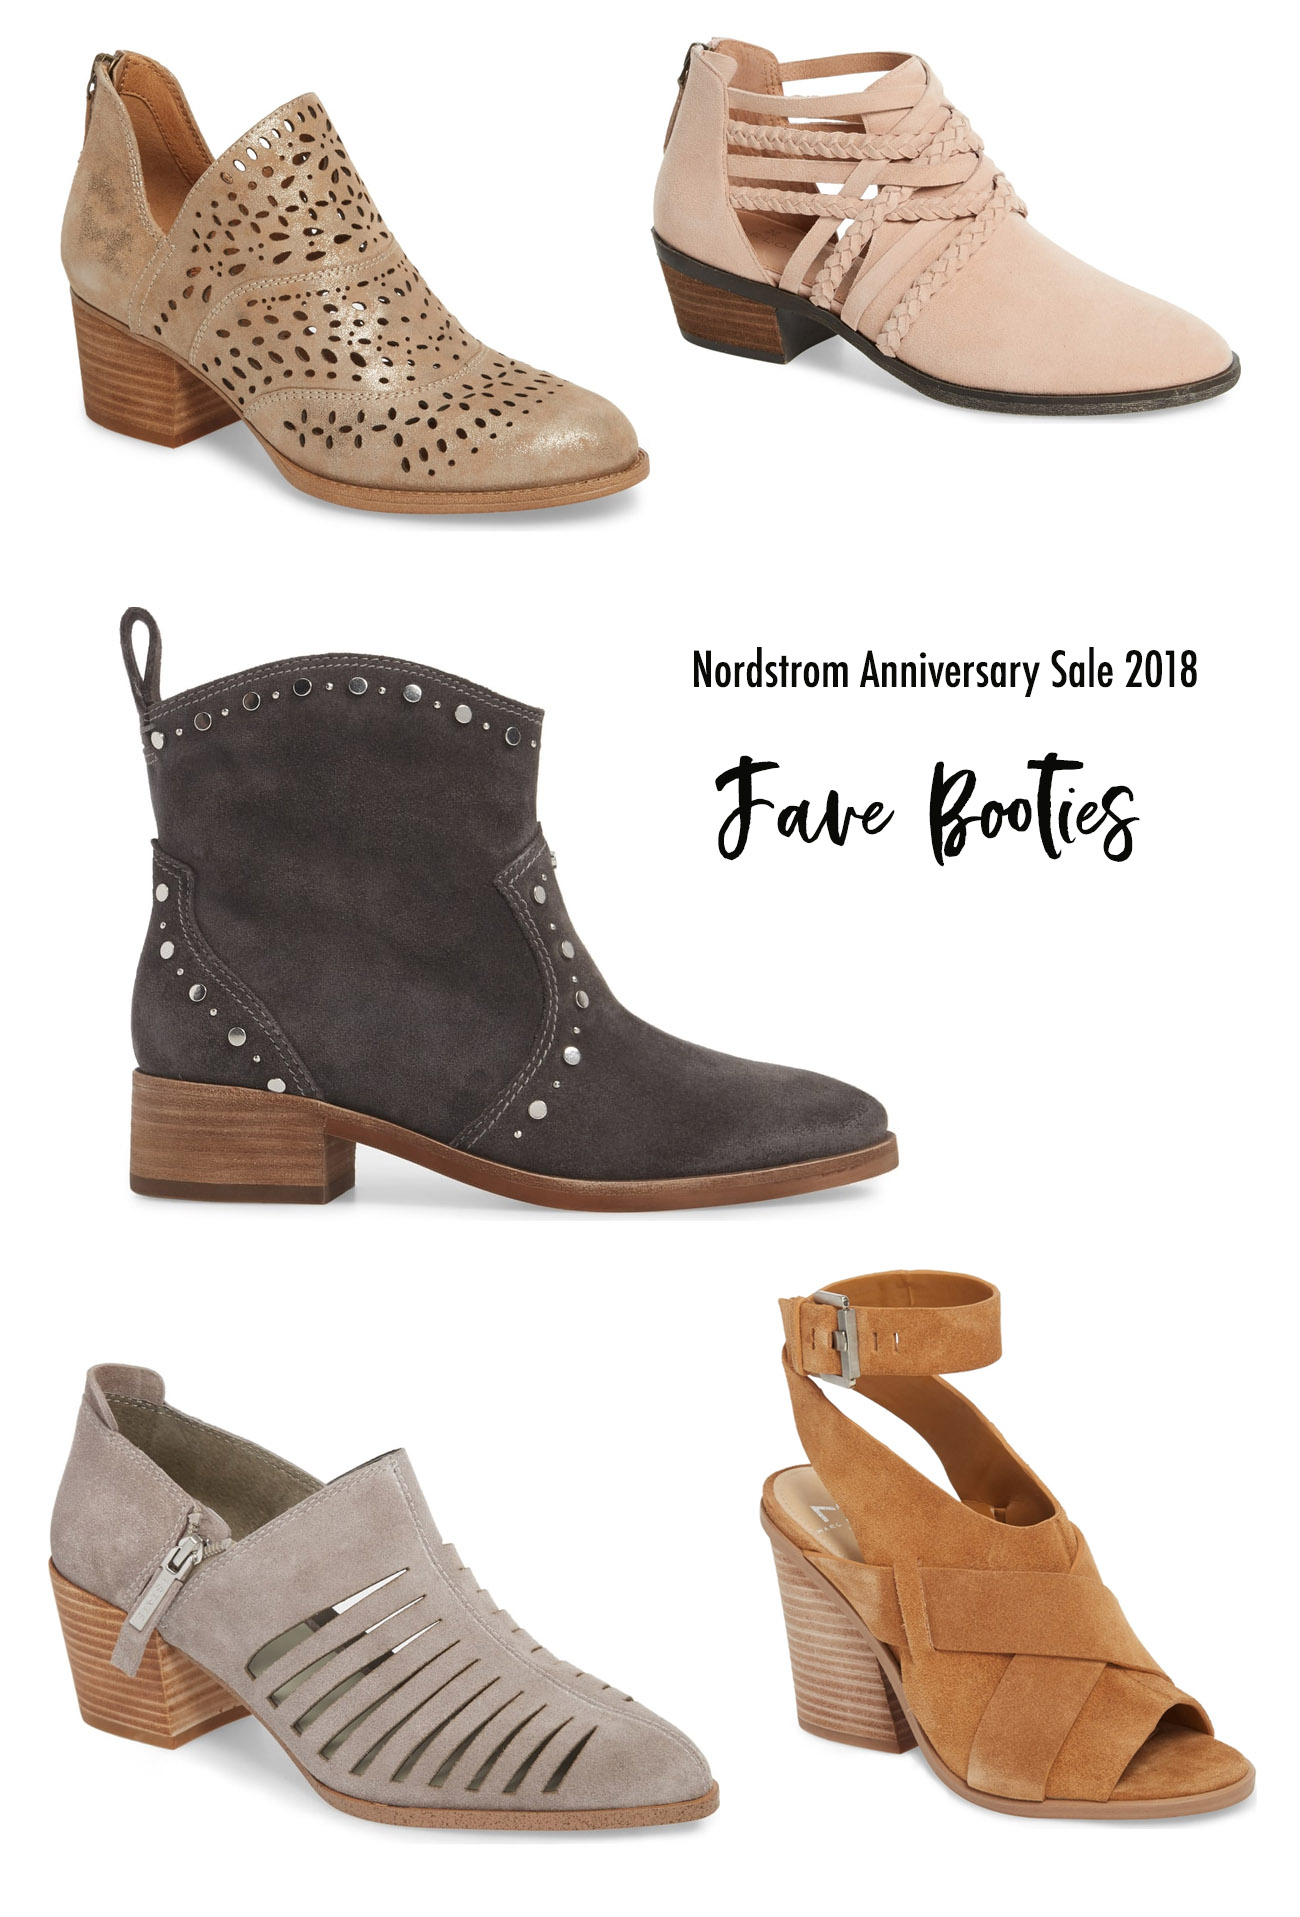 Fave Booties from the Nordstrom Anniversary Sale